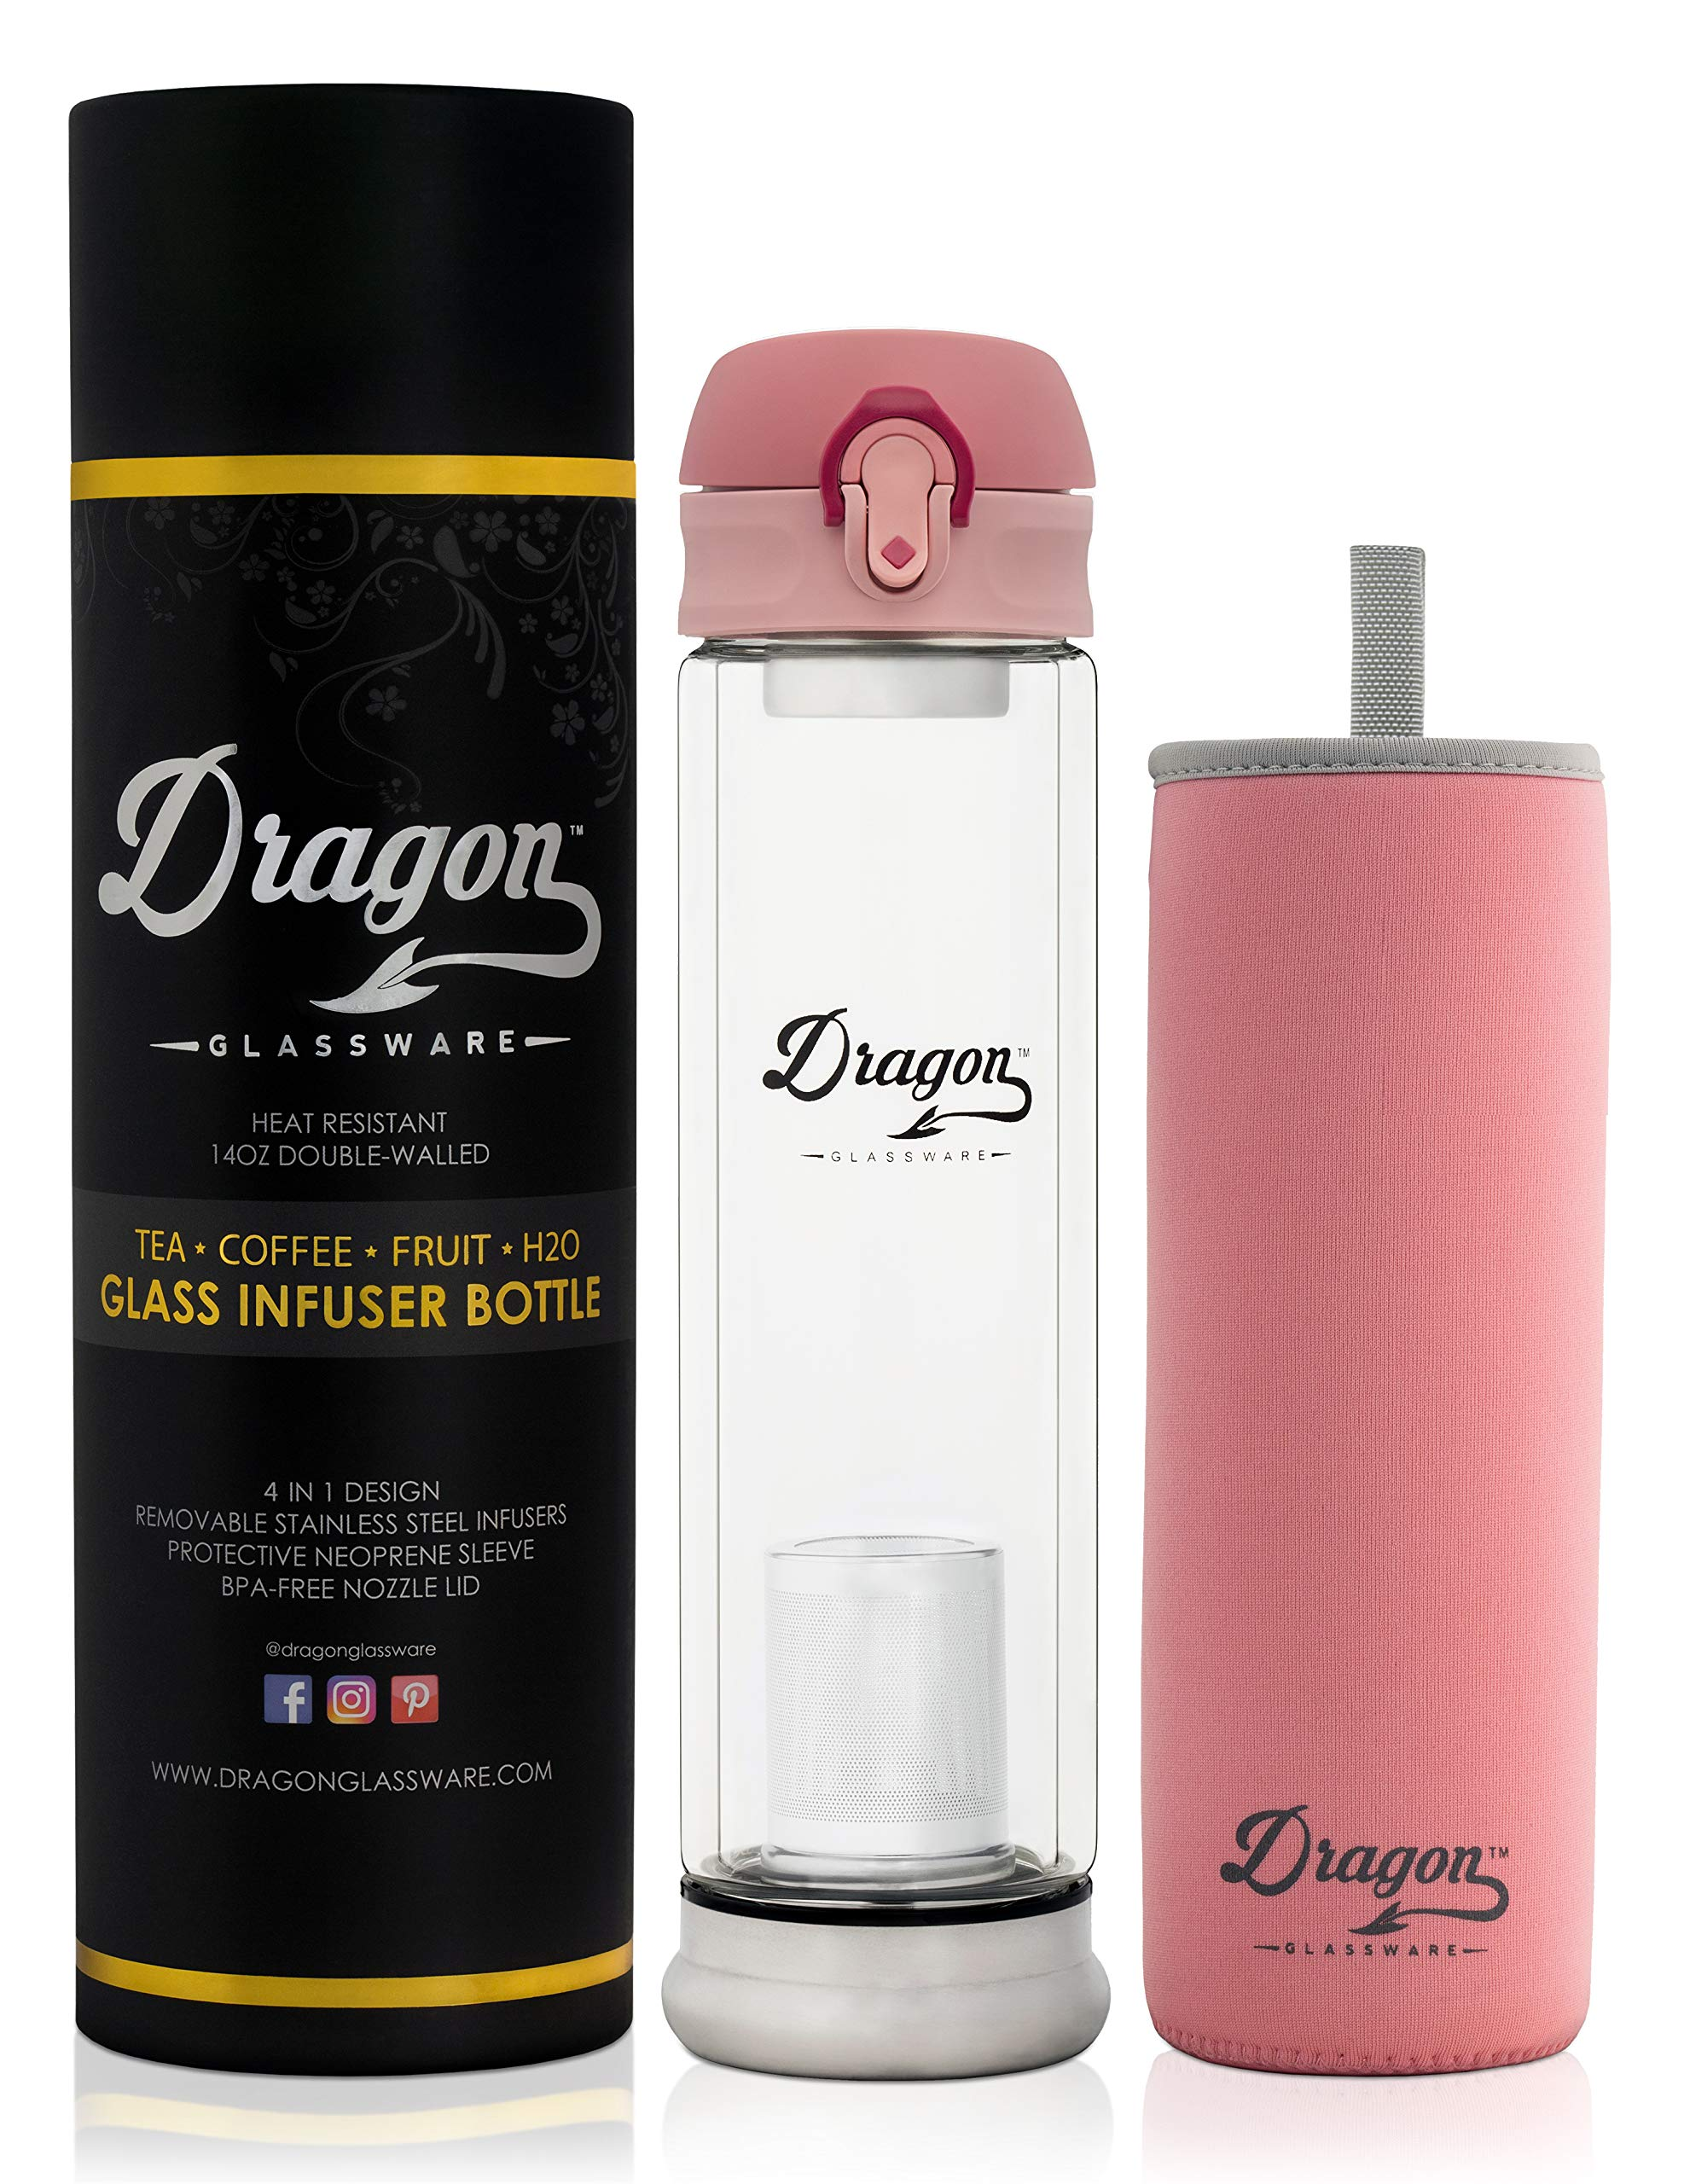 Dragon Glassware Tea Infuser Bottle, Premium Double Walled Tumbler with Flip-Top Lid, 2 Stainless Steel Filters and Travel Sleeve for Loose Leaf Tea, BPA Free, 14-Ounces, Gift Boxed by Dragon Glassware